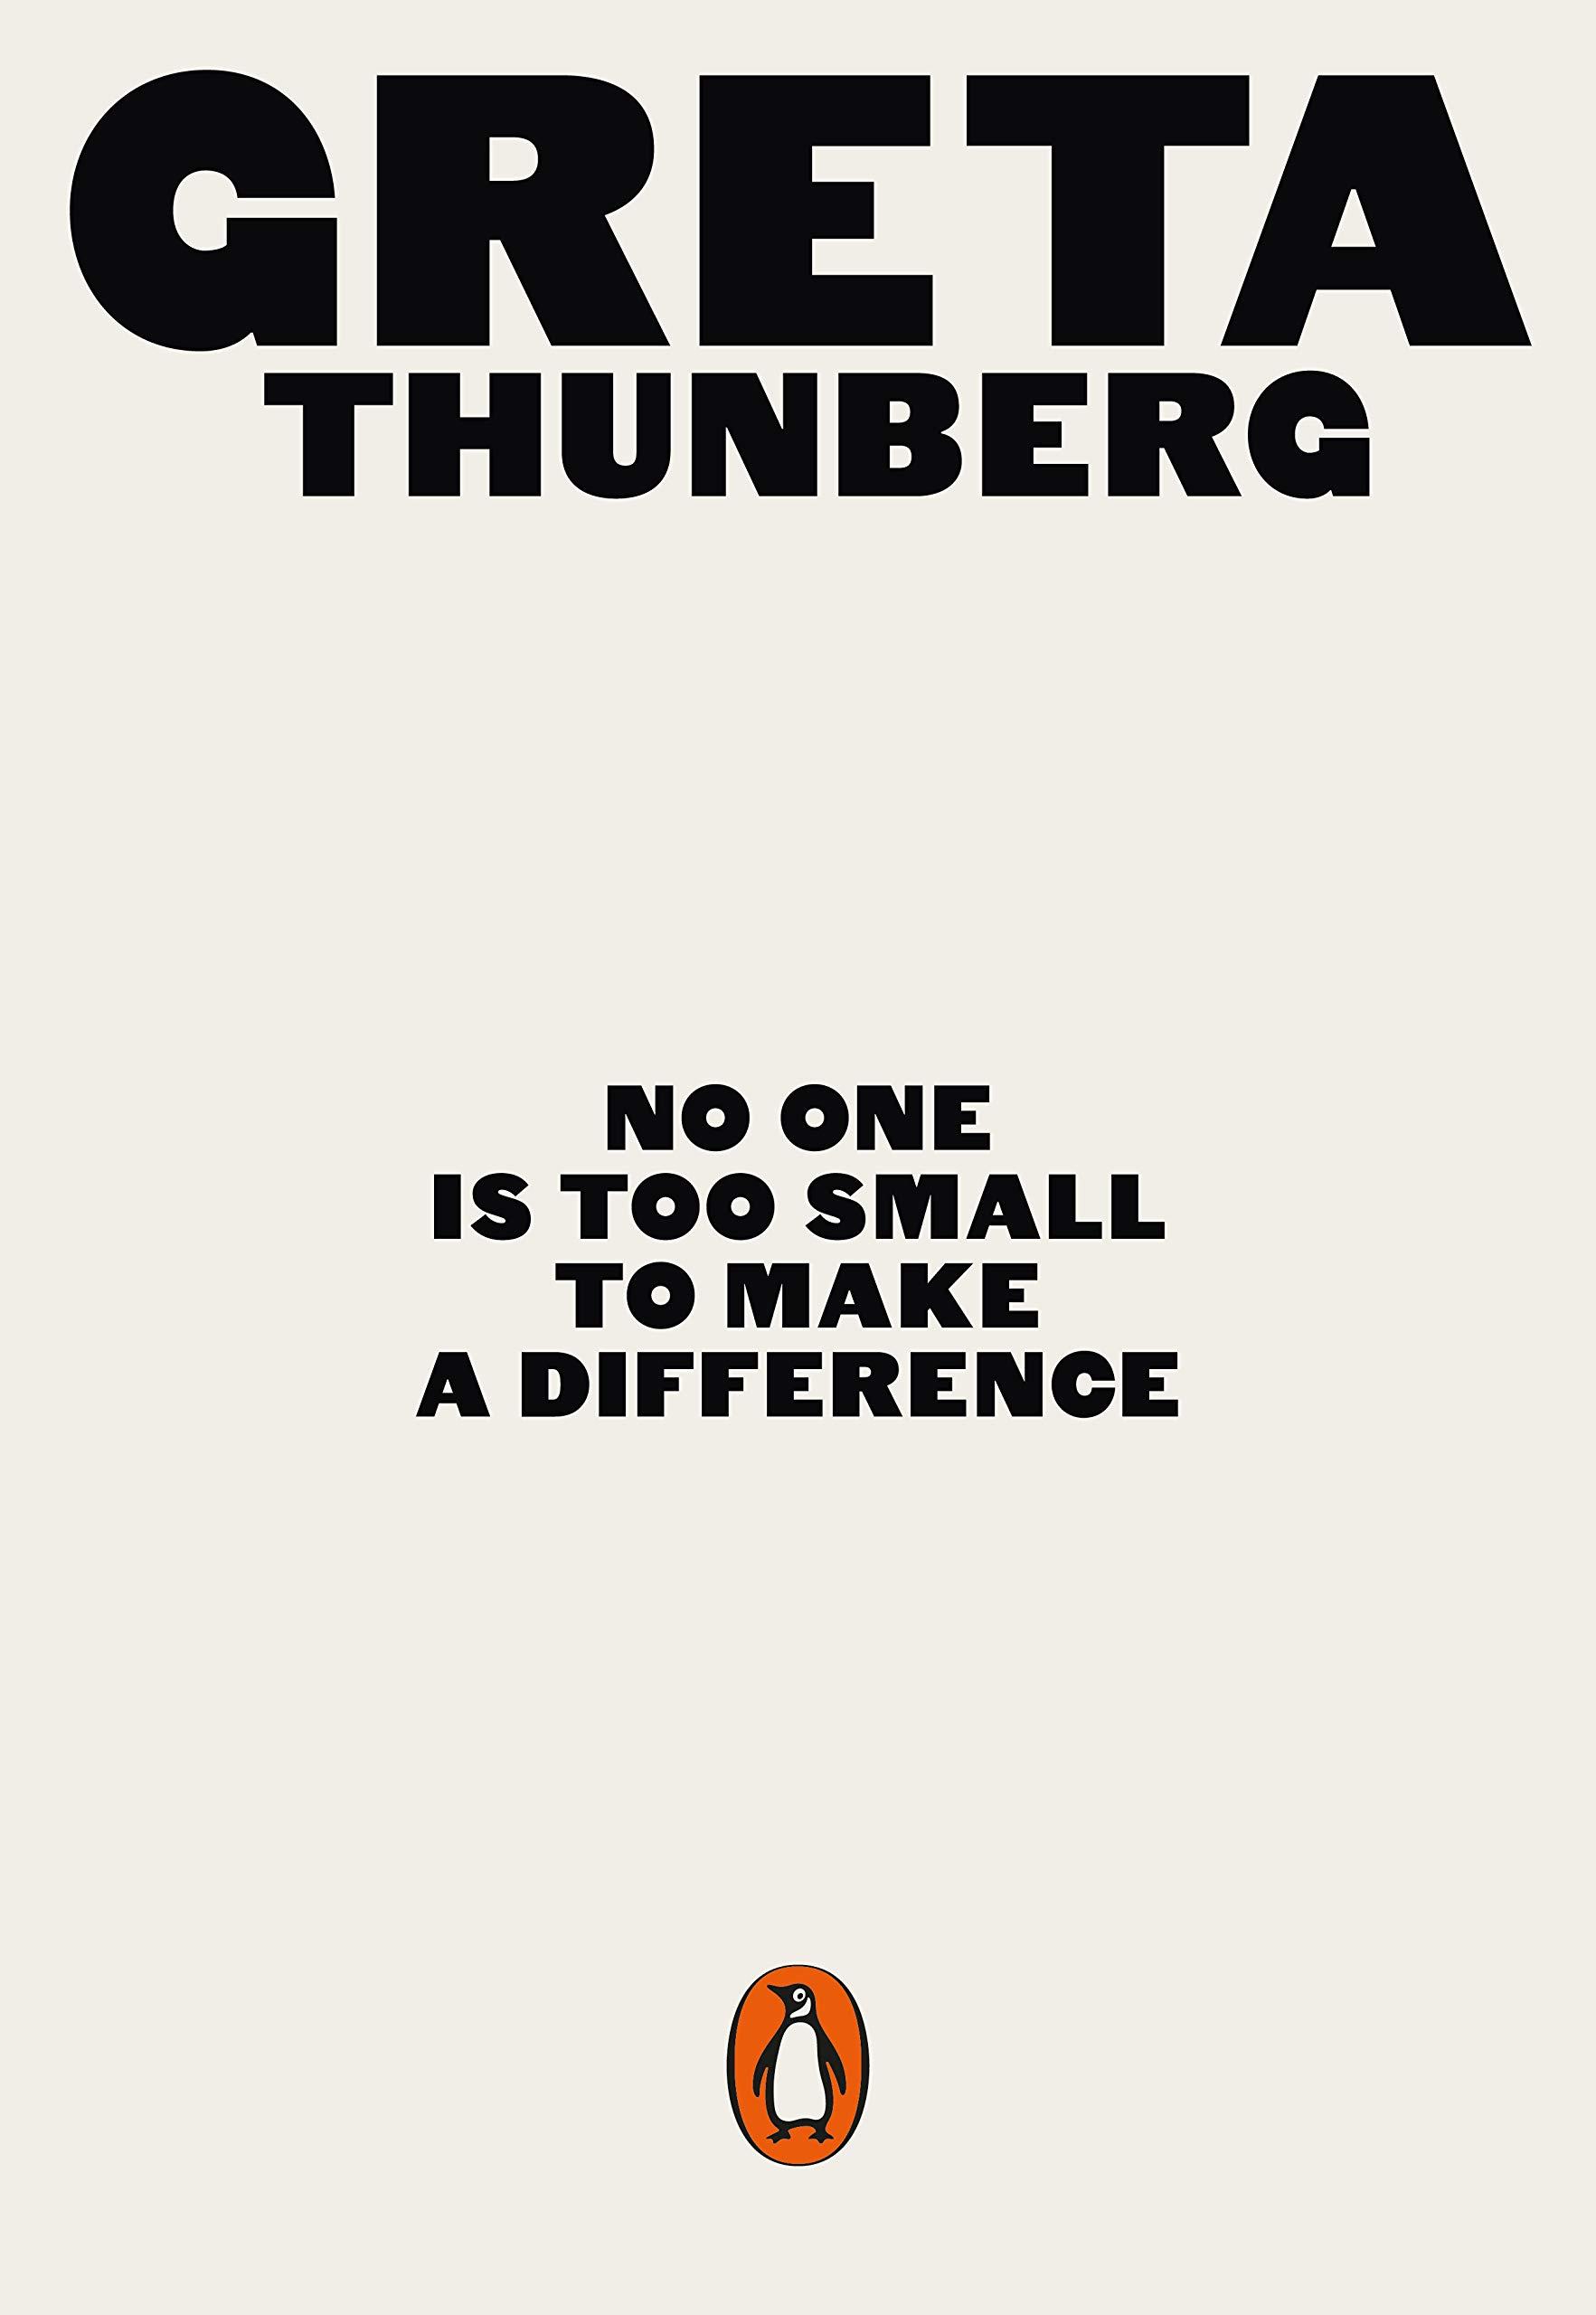 No-one is too small to make a difference